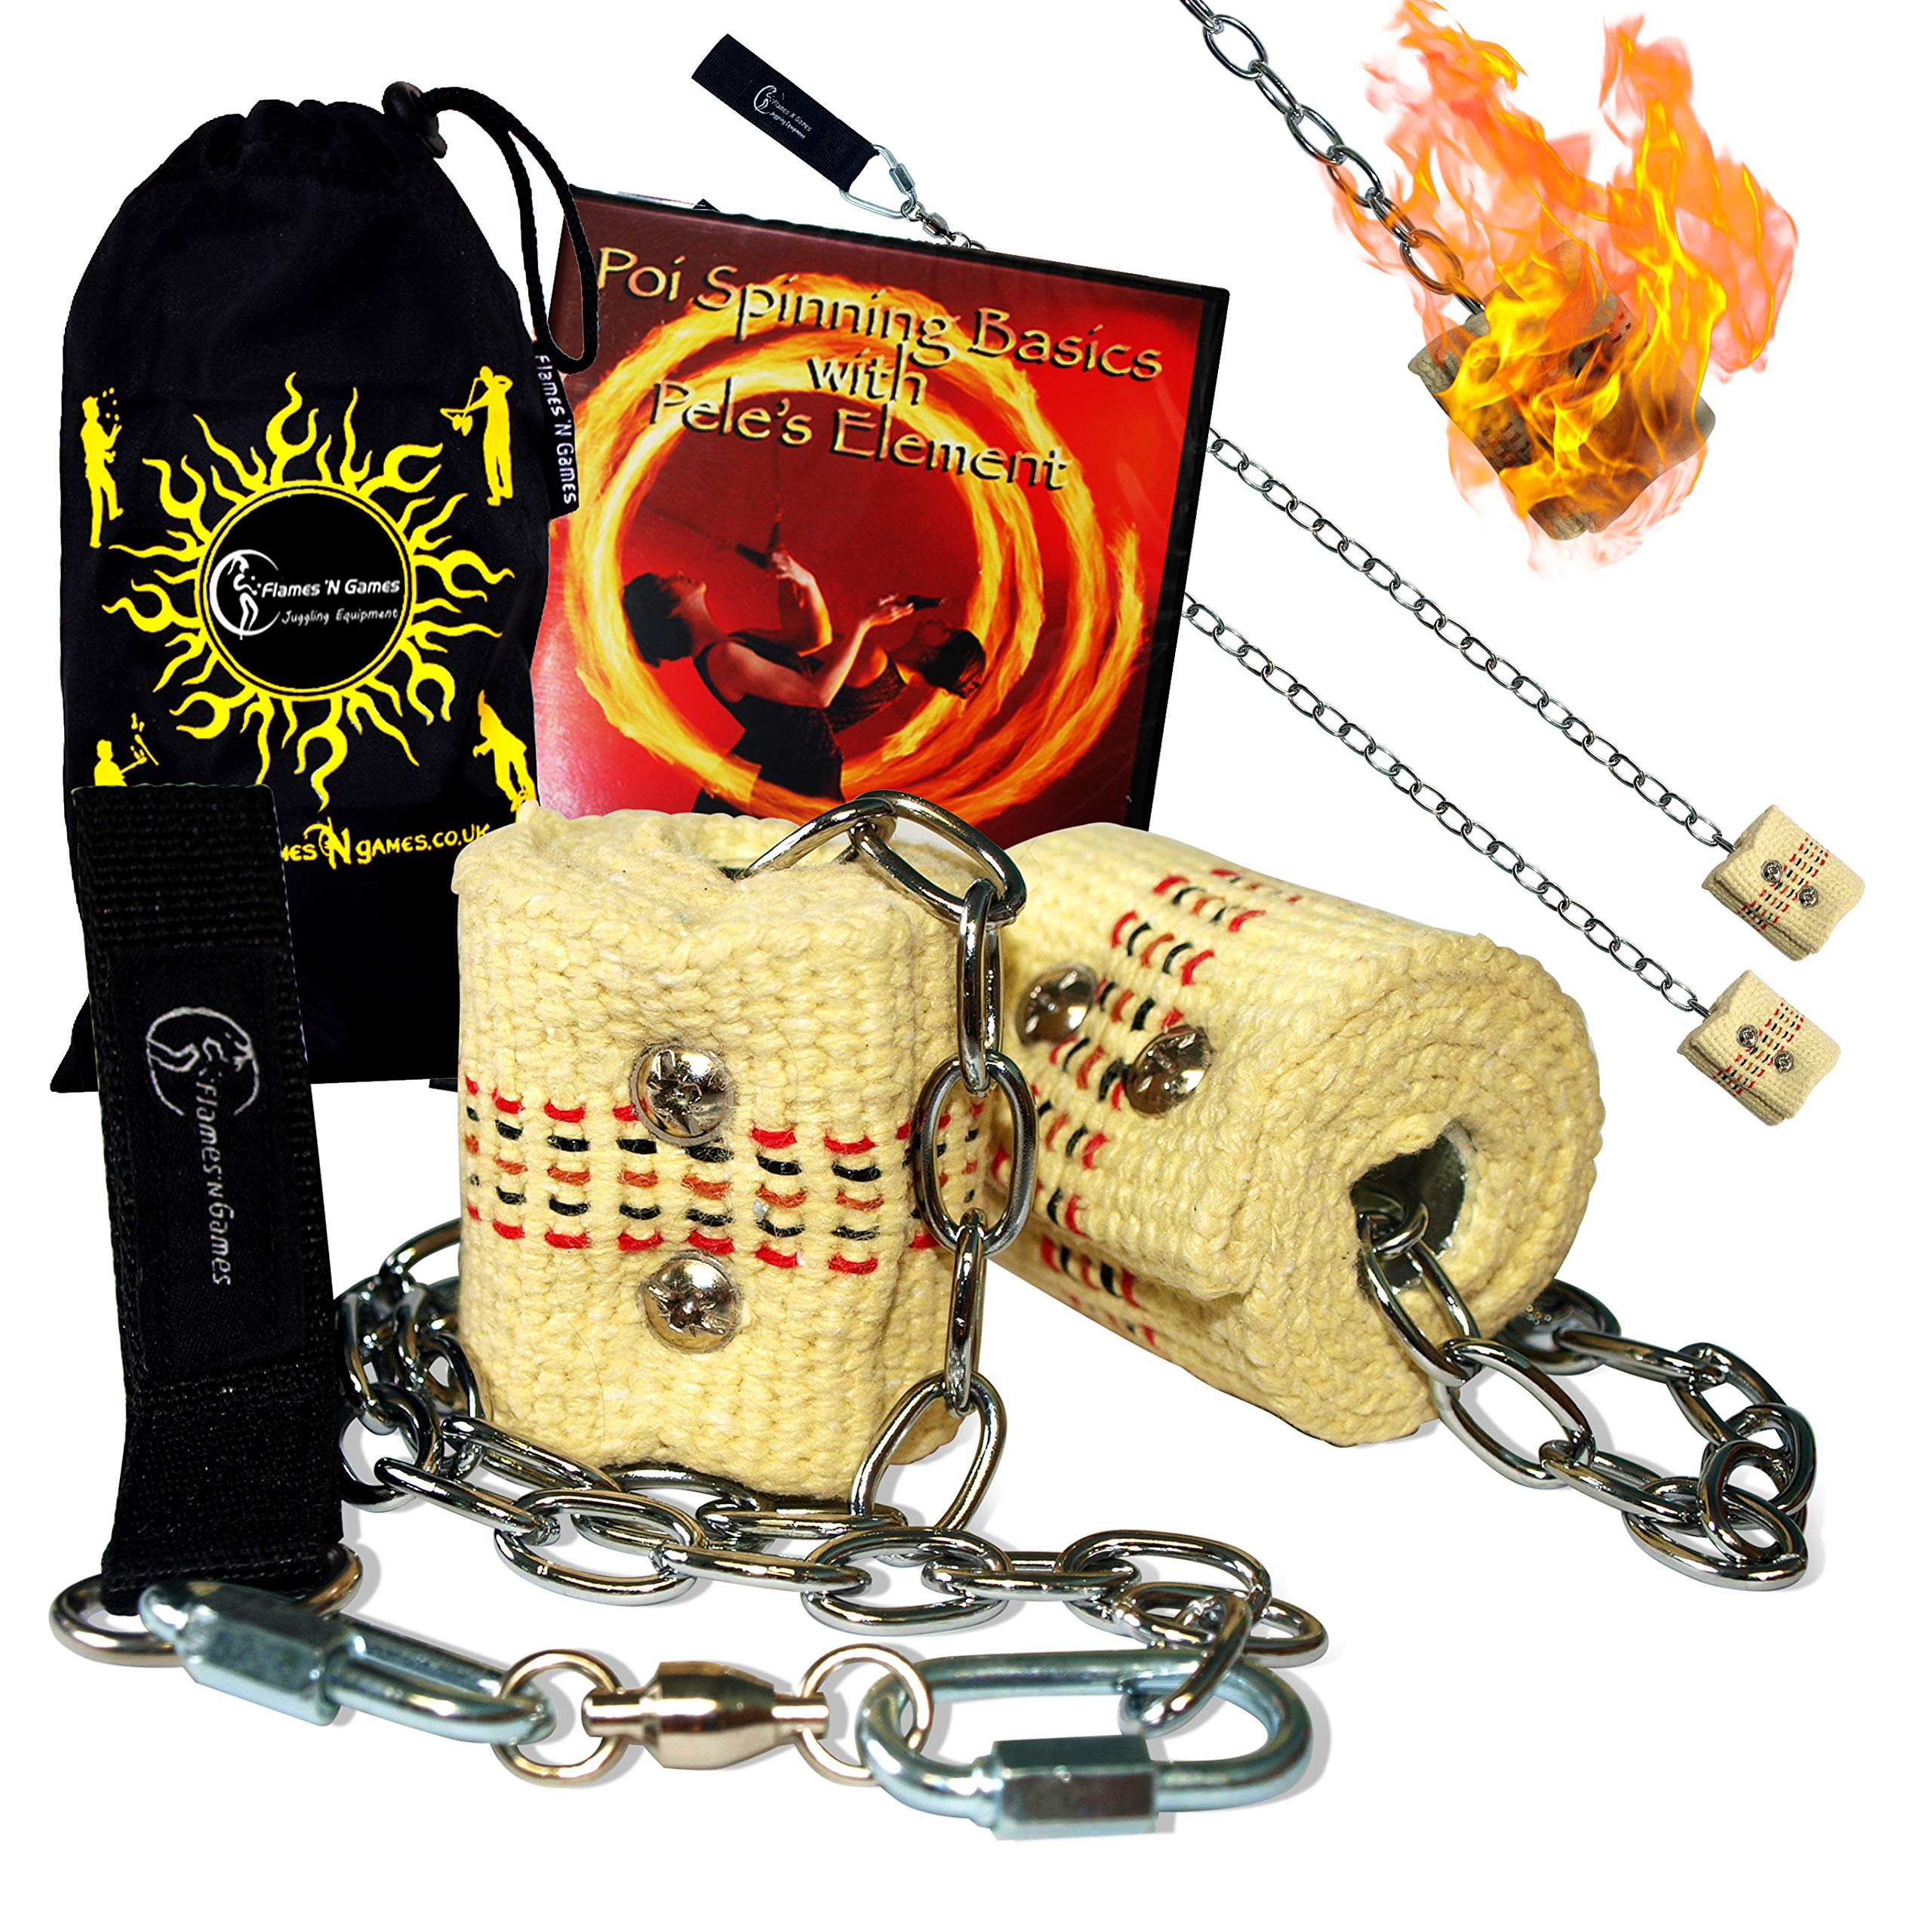 STARTER Fire Poi Set - 2x45mm Wicks + Adventures In Poi DVD + Flames N Games Travel Bag! by Flames N Games Fire Poi